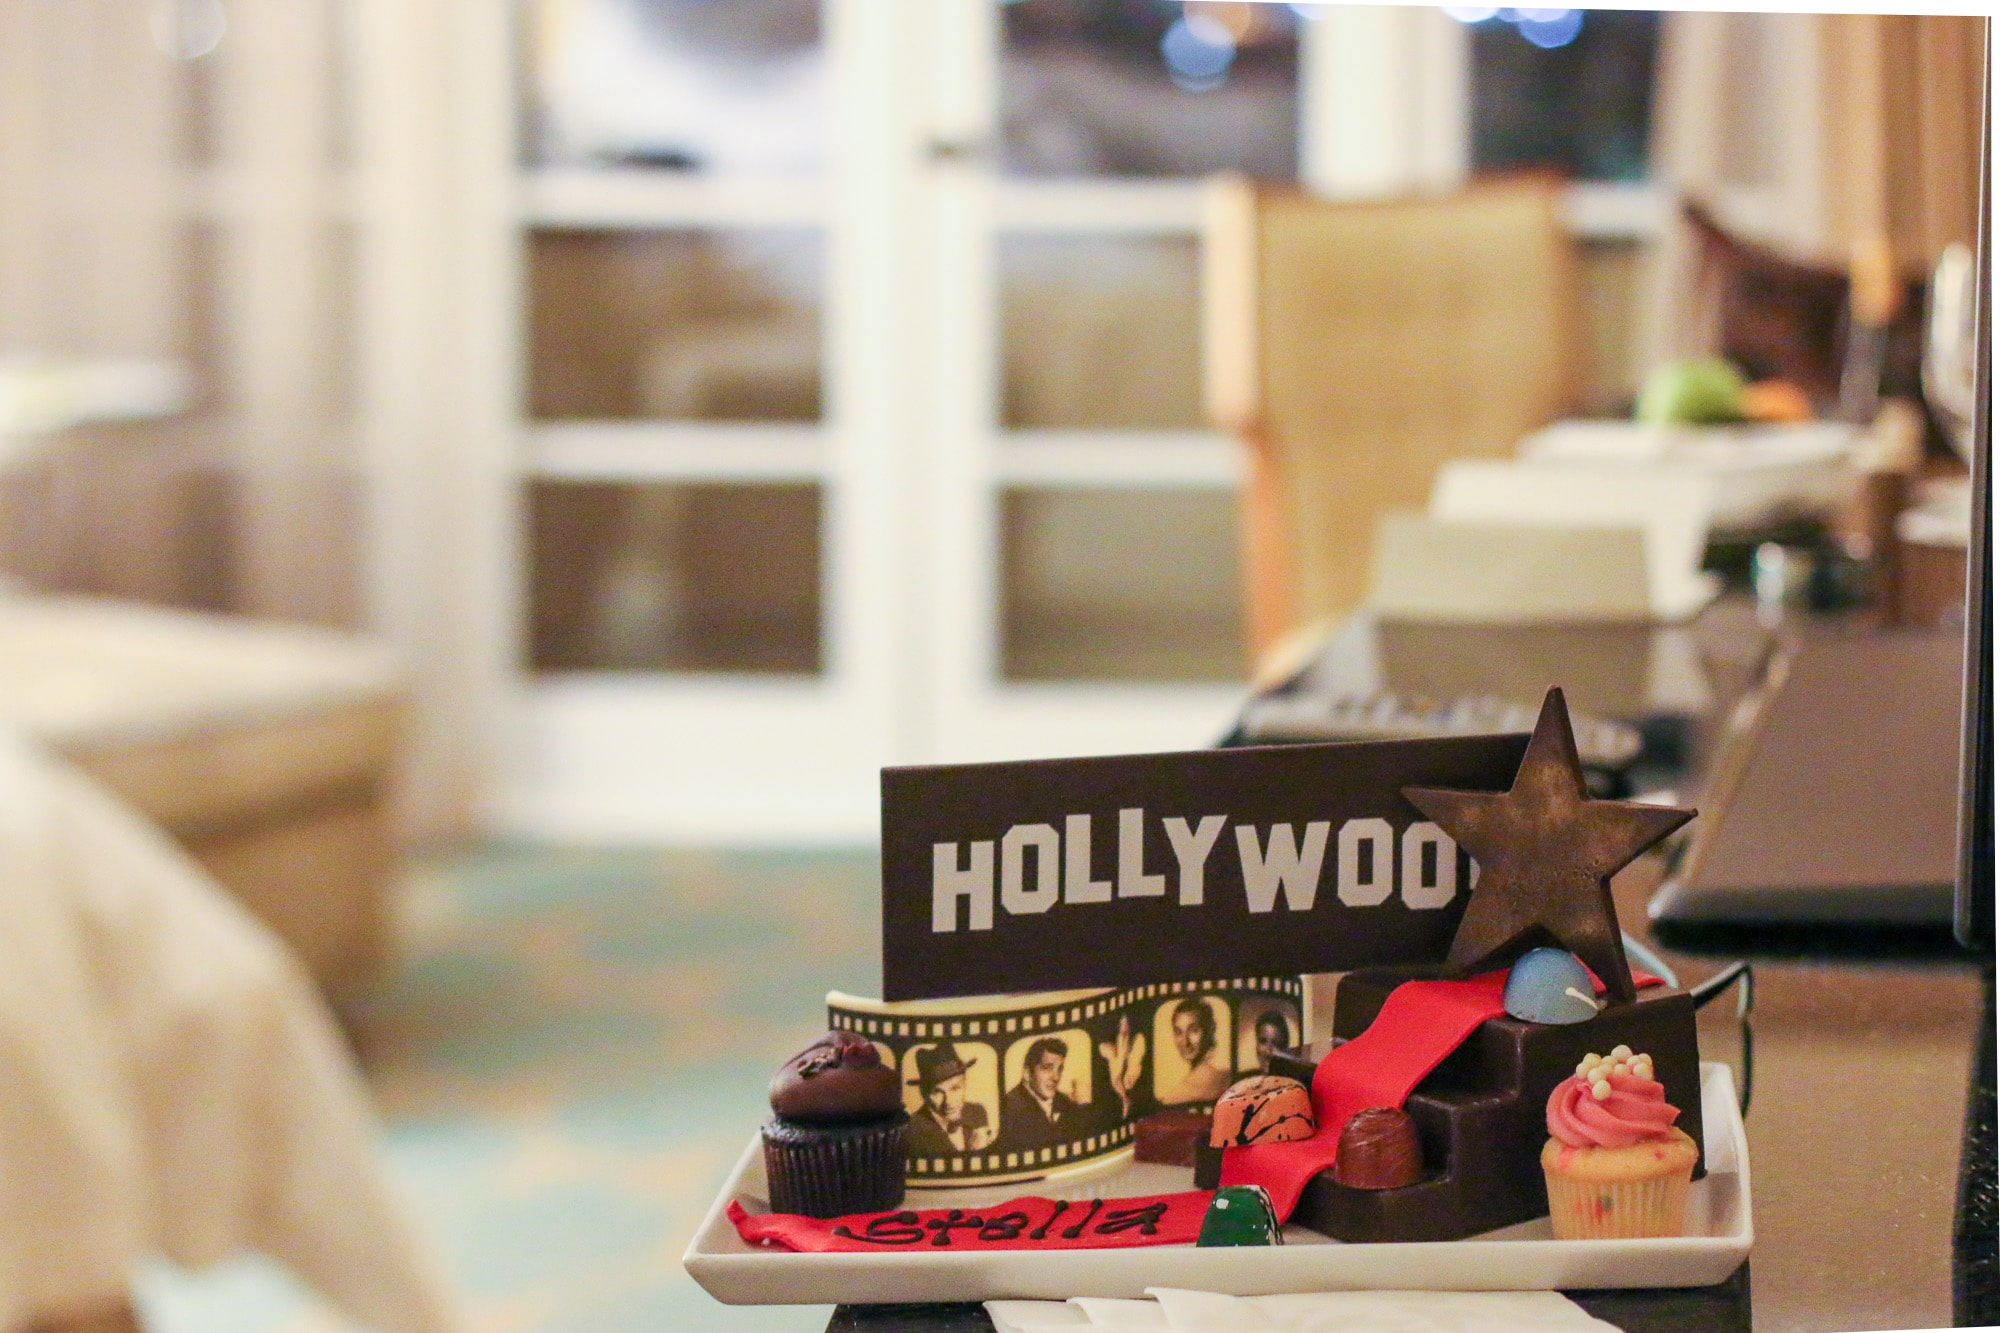 A chocolate Hollywood sign welcome amenity that was prepared for kids.